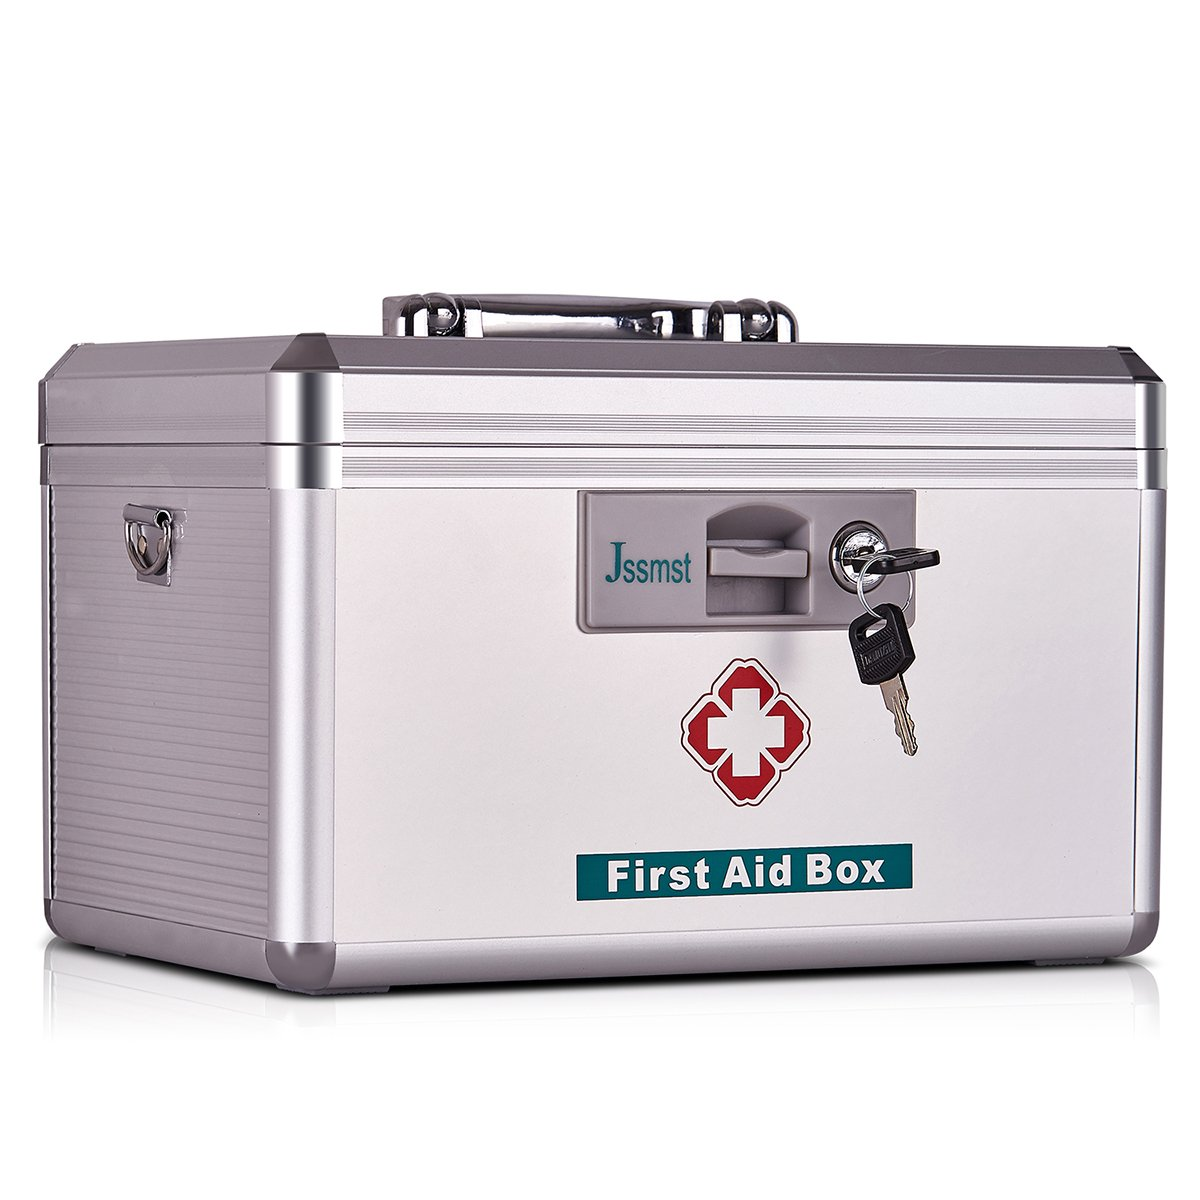 Jssmst Medical Box with Lock - First Aid Box Emergency Medicine Case with Drugs Storage, 15.35 x 9.05 x 8.66 inches, Silver (MC17023)